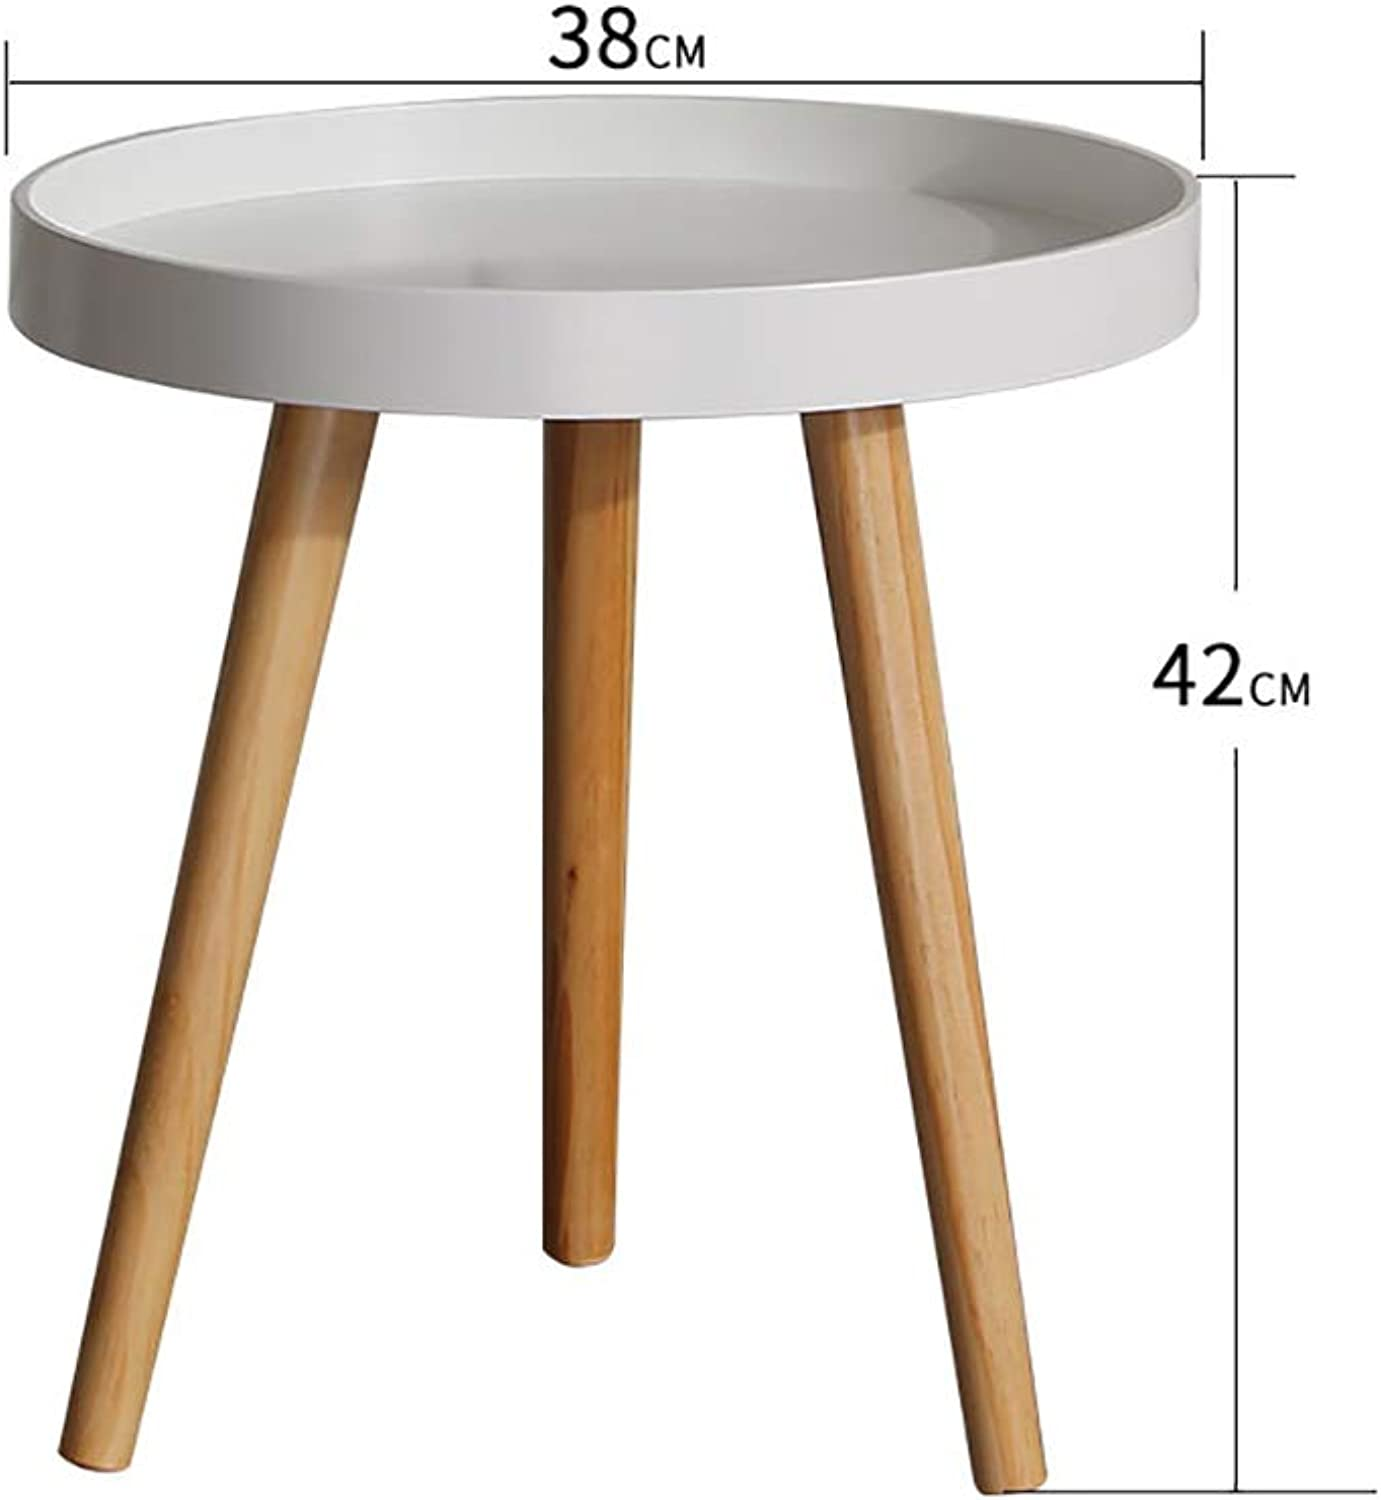 Small coffee table Small Round Table Bedroom Bedside Table Multi-Function Coffee Table Easy to Clean and Drop Down Durable Household, (high 50CM, 42CM Optional)